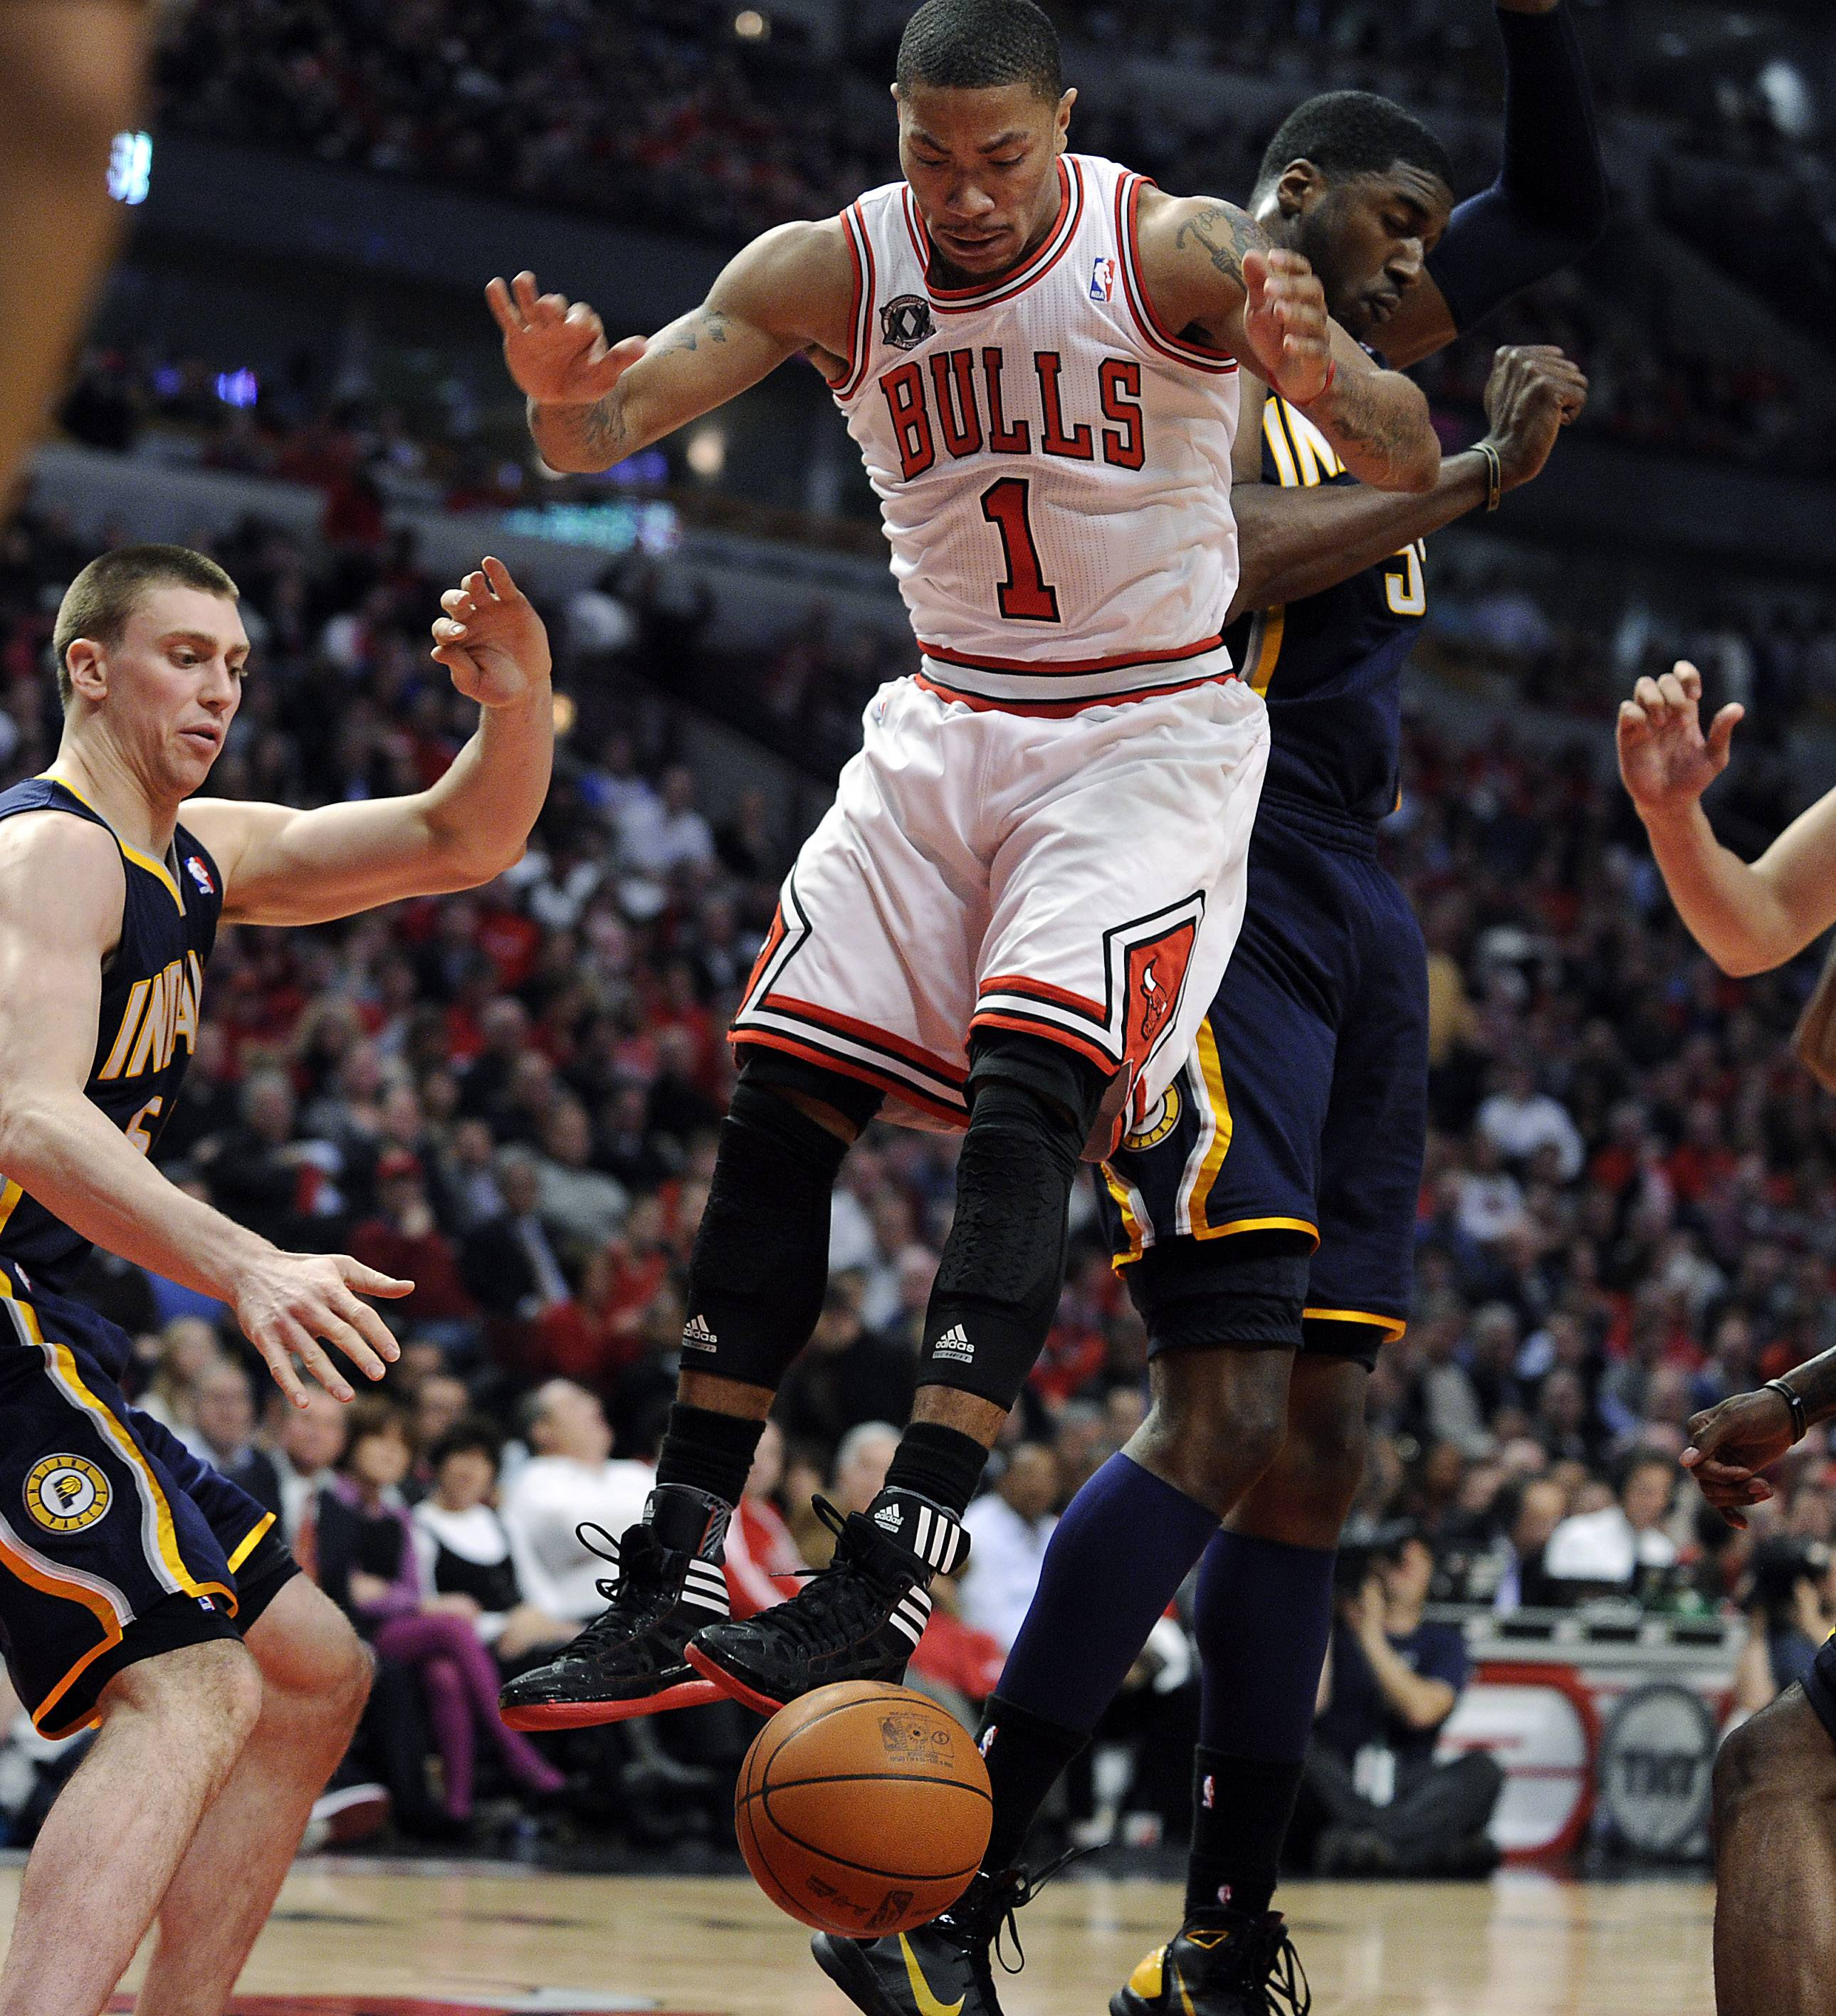 Derrick  Rose piled up 36 points, 8 rebounds and 6 assists to lead the Bulls to a 96-90 victory and a 2-0 series lead against the pesky Pacers.